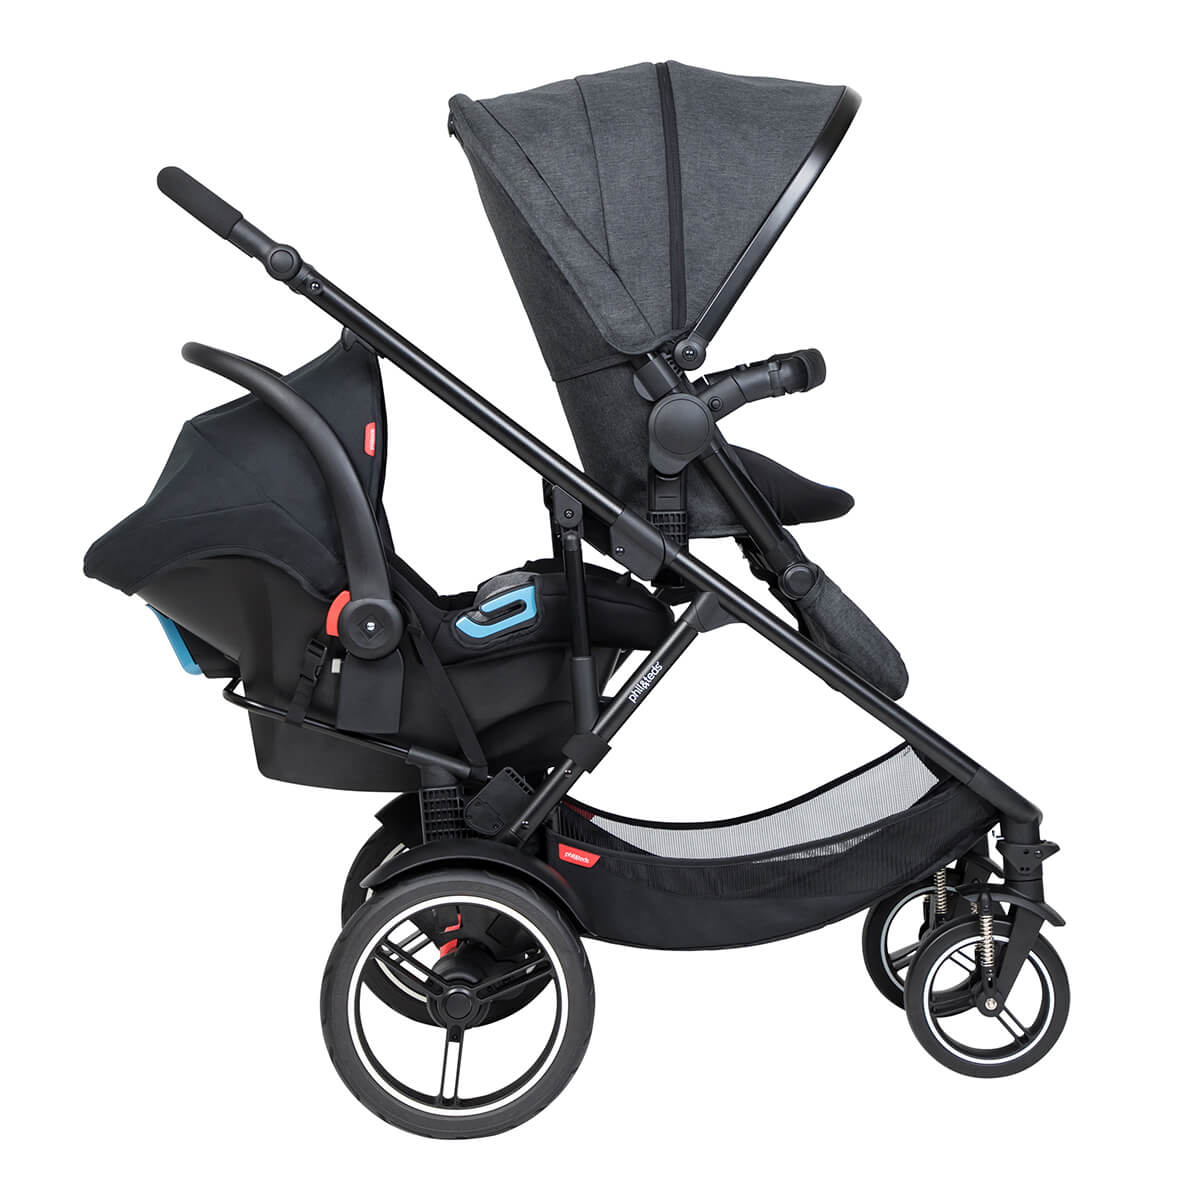 https://cdn.accentuate.io/4381204447309/19466204250306/philteds-voyager-buggy-in-forward-facing-mode-with-travel-system-in-the-rear-v1626485501998.jpg?1200x1200